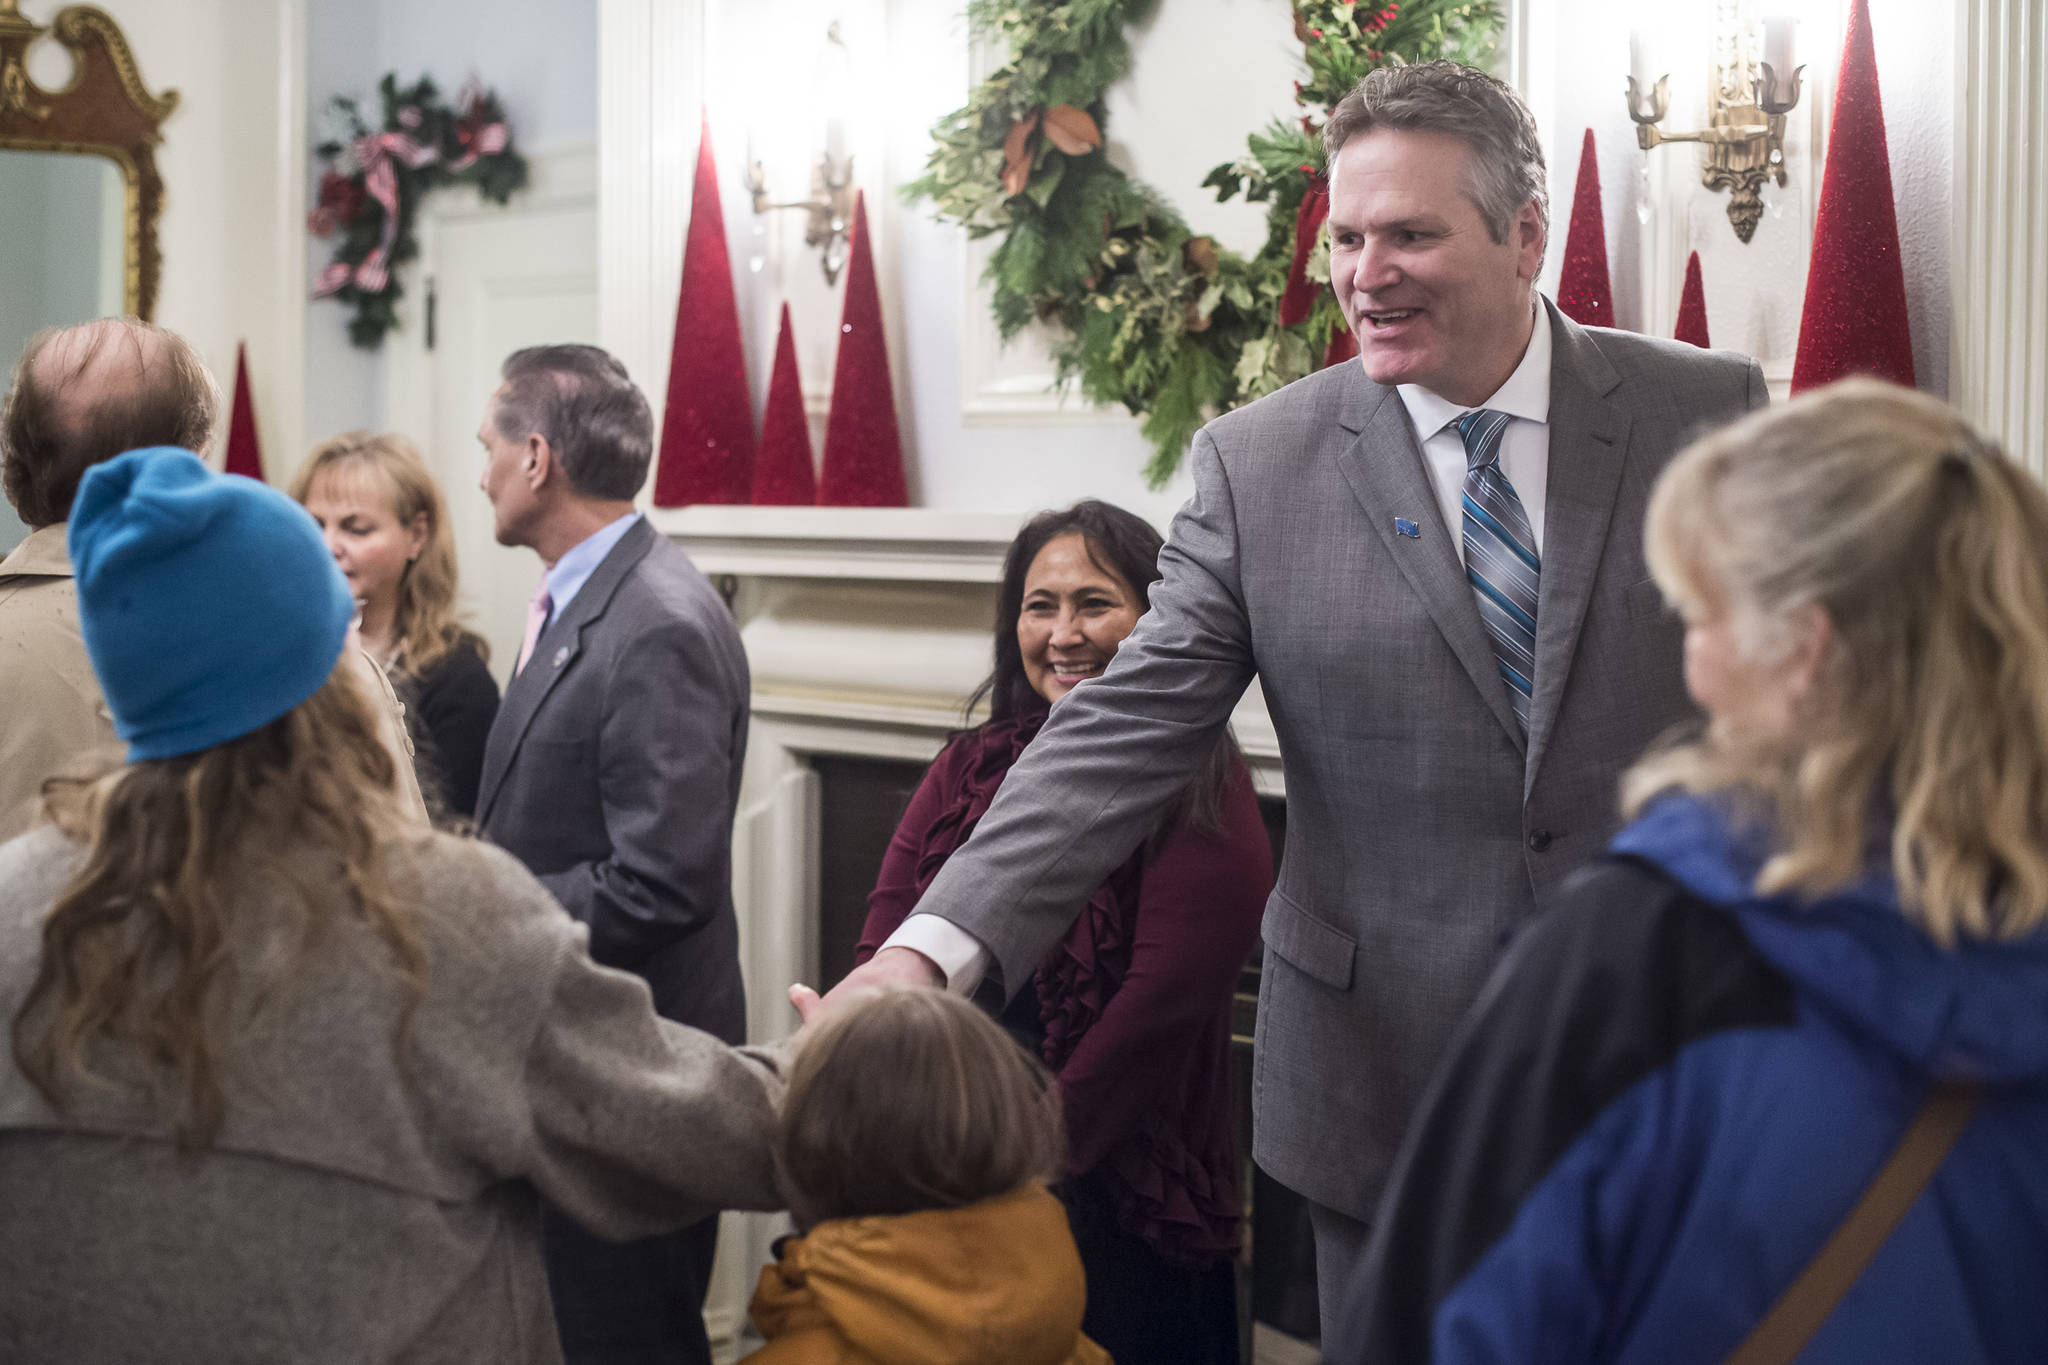 Gov. Mike Dunleavy and his wife, Rose, welcome Juneau residents at the Governor's Open House on Tuesday. (Michael Penn | Juneau Empire)